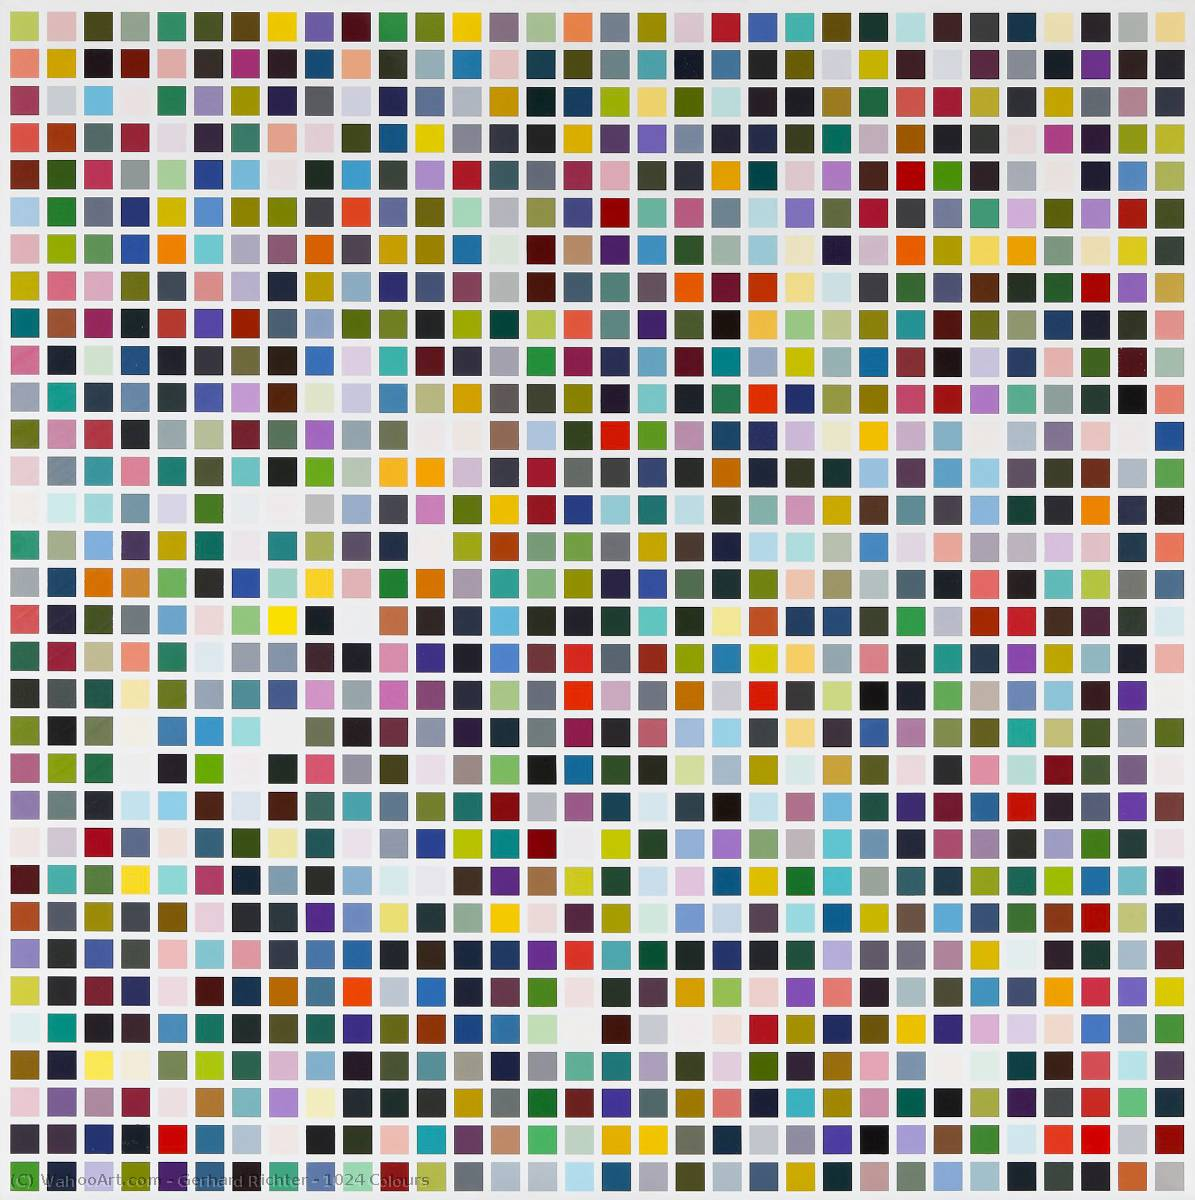 1024 Colours, Oil On Canvas by Gerhard Richter